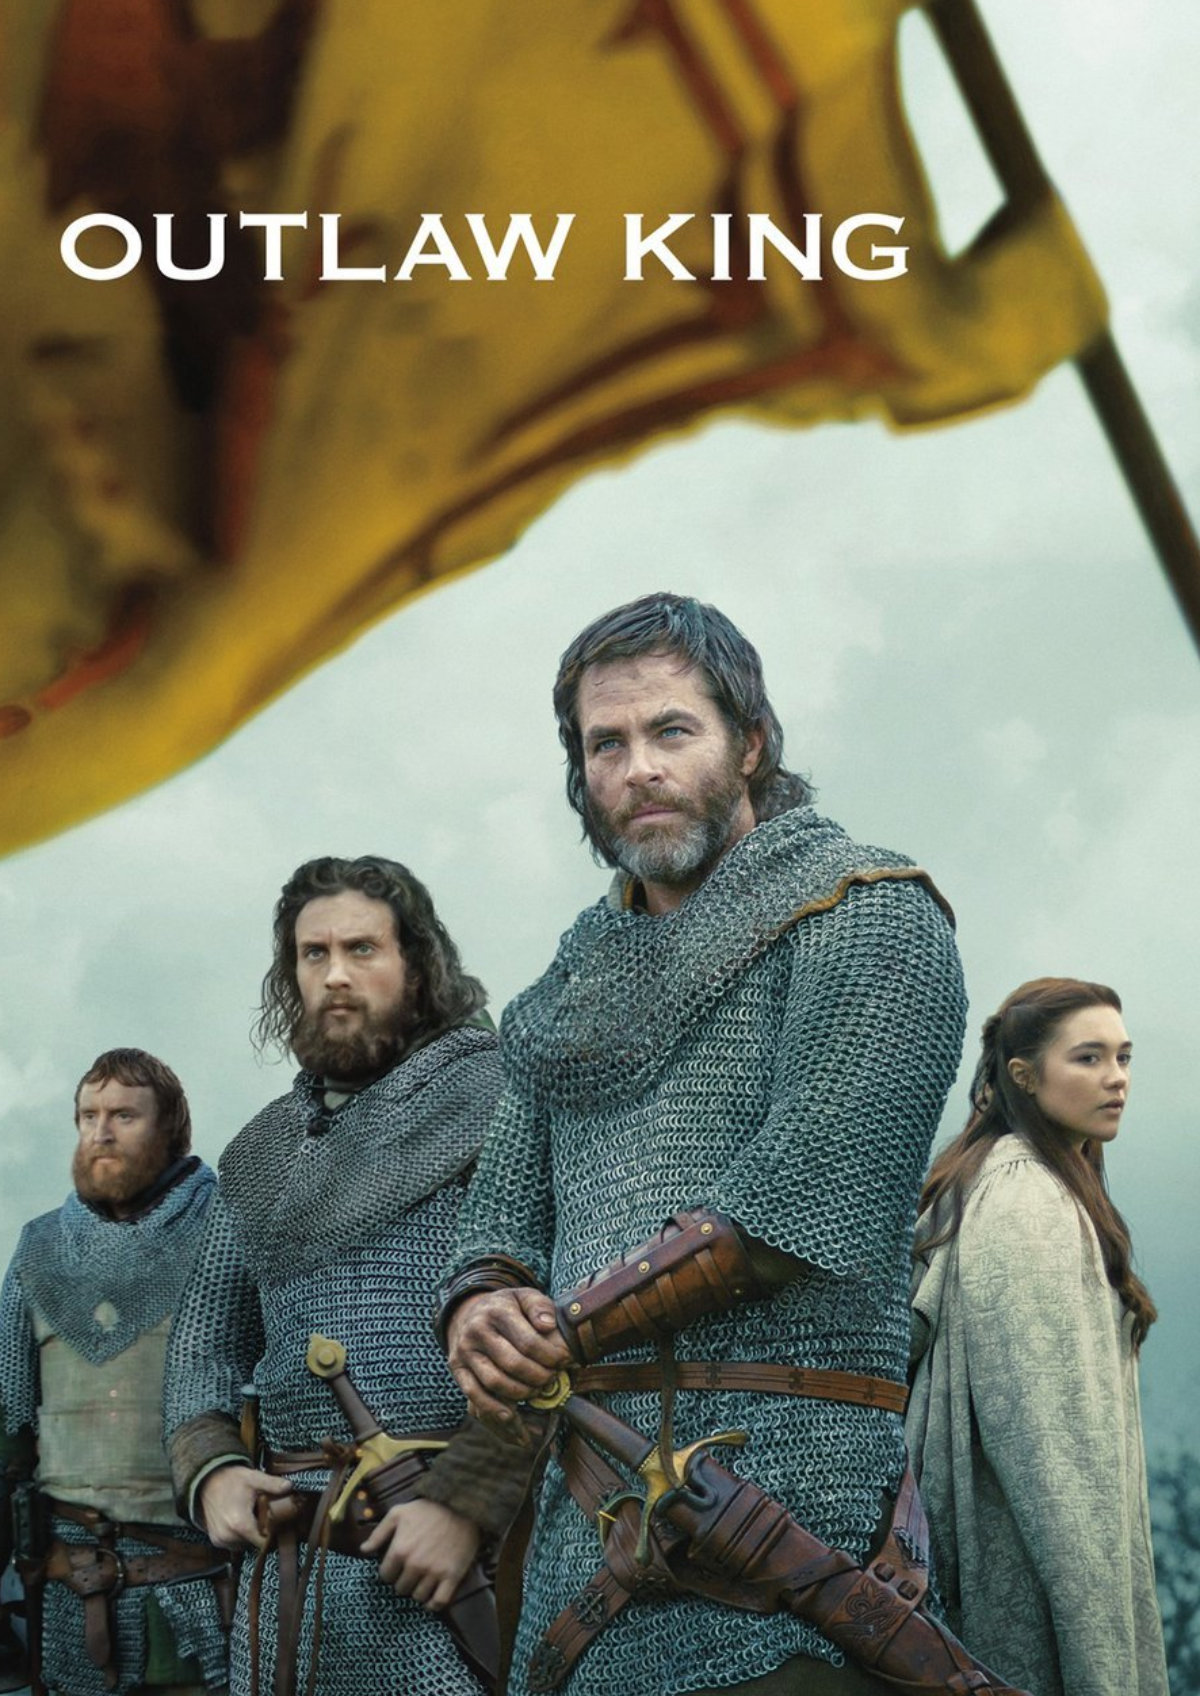 'Outlaw King' movie poster